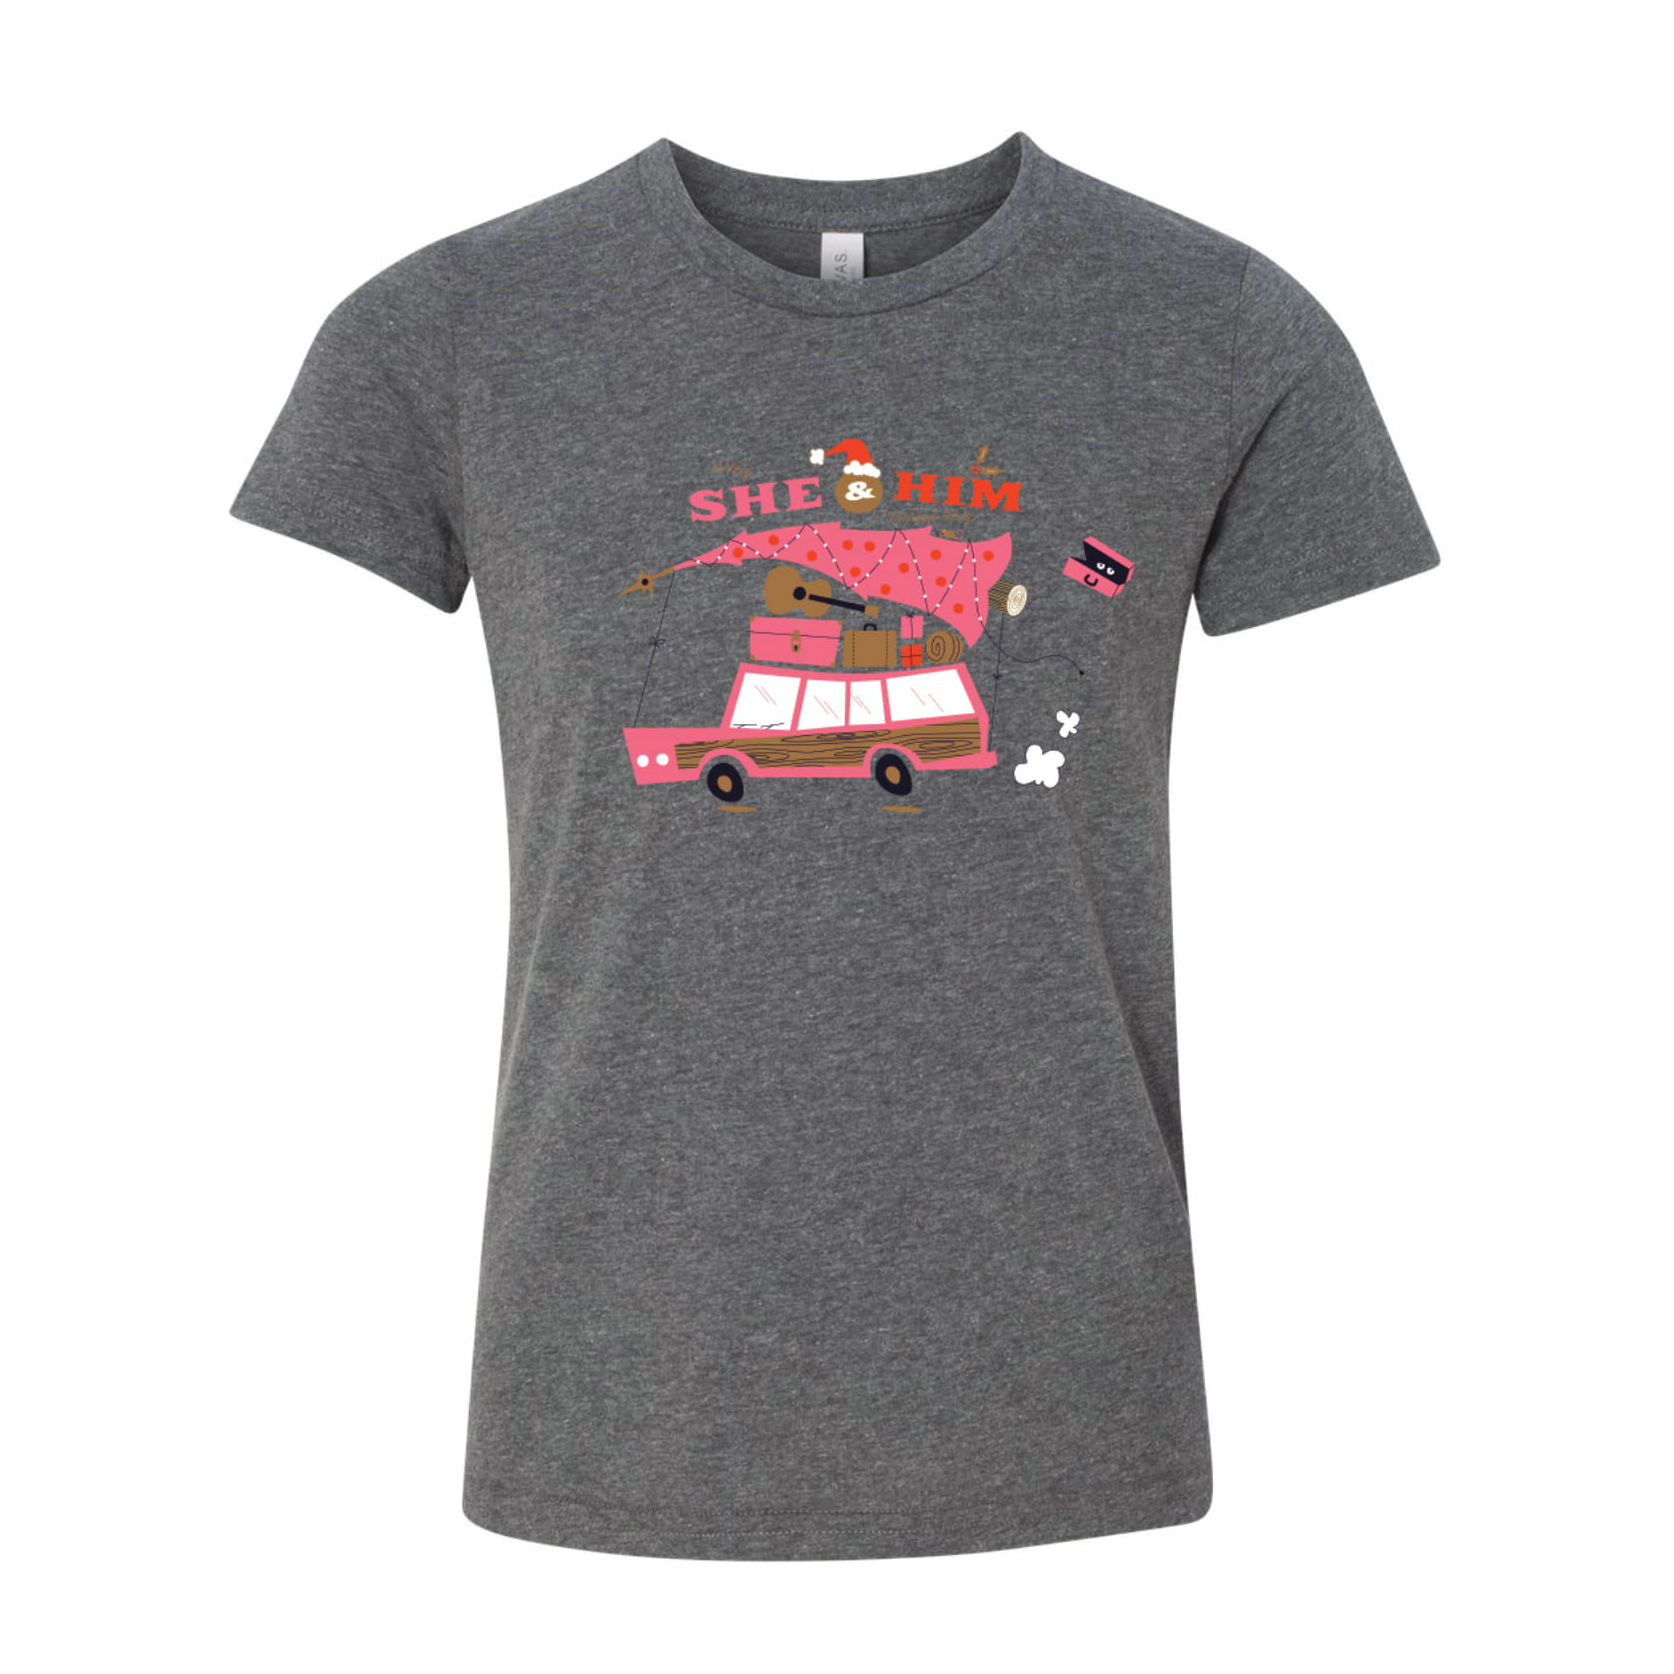 She & Him Holiday Wagon Tee